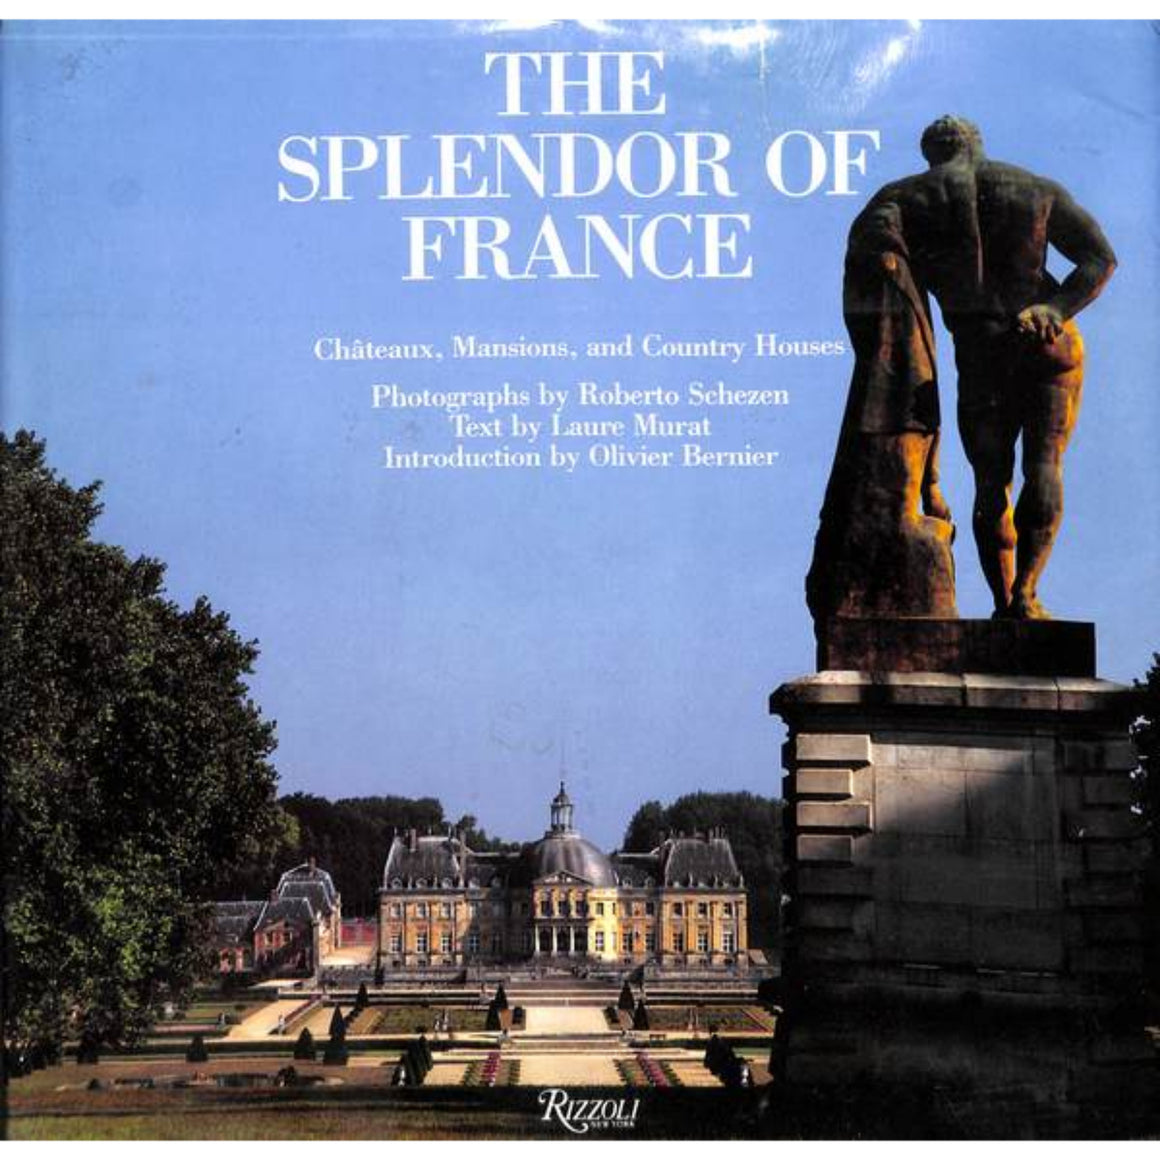 'The Splendor of France: Chateaux, Mansions, and Country Houses'